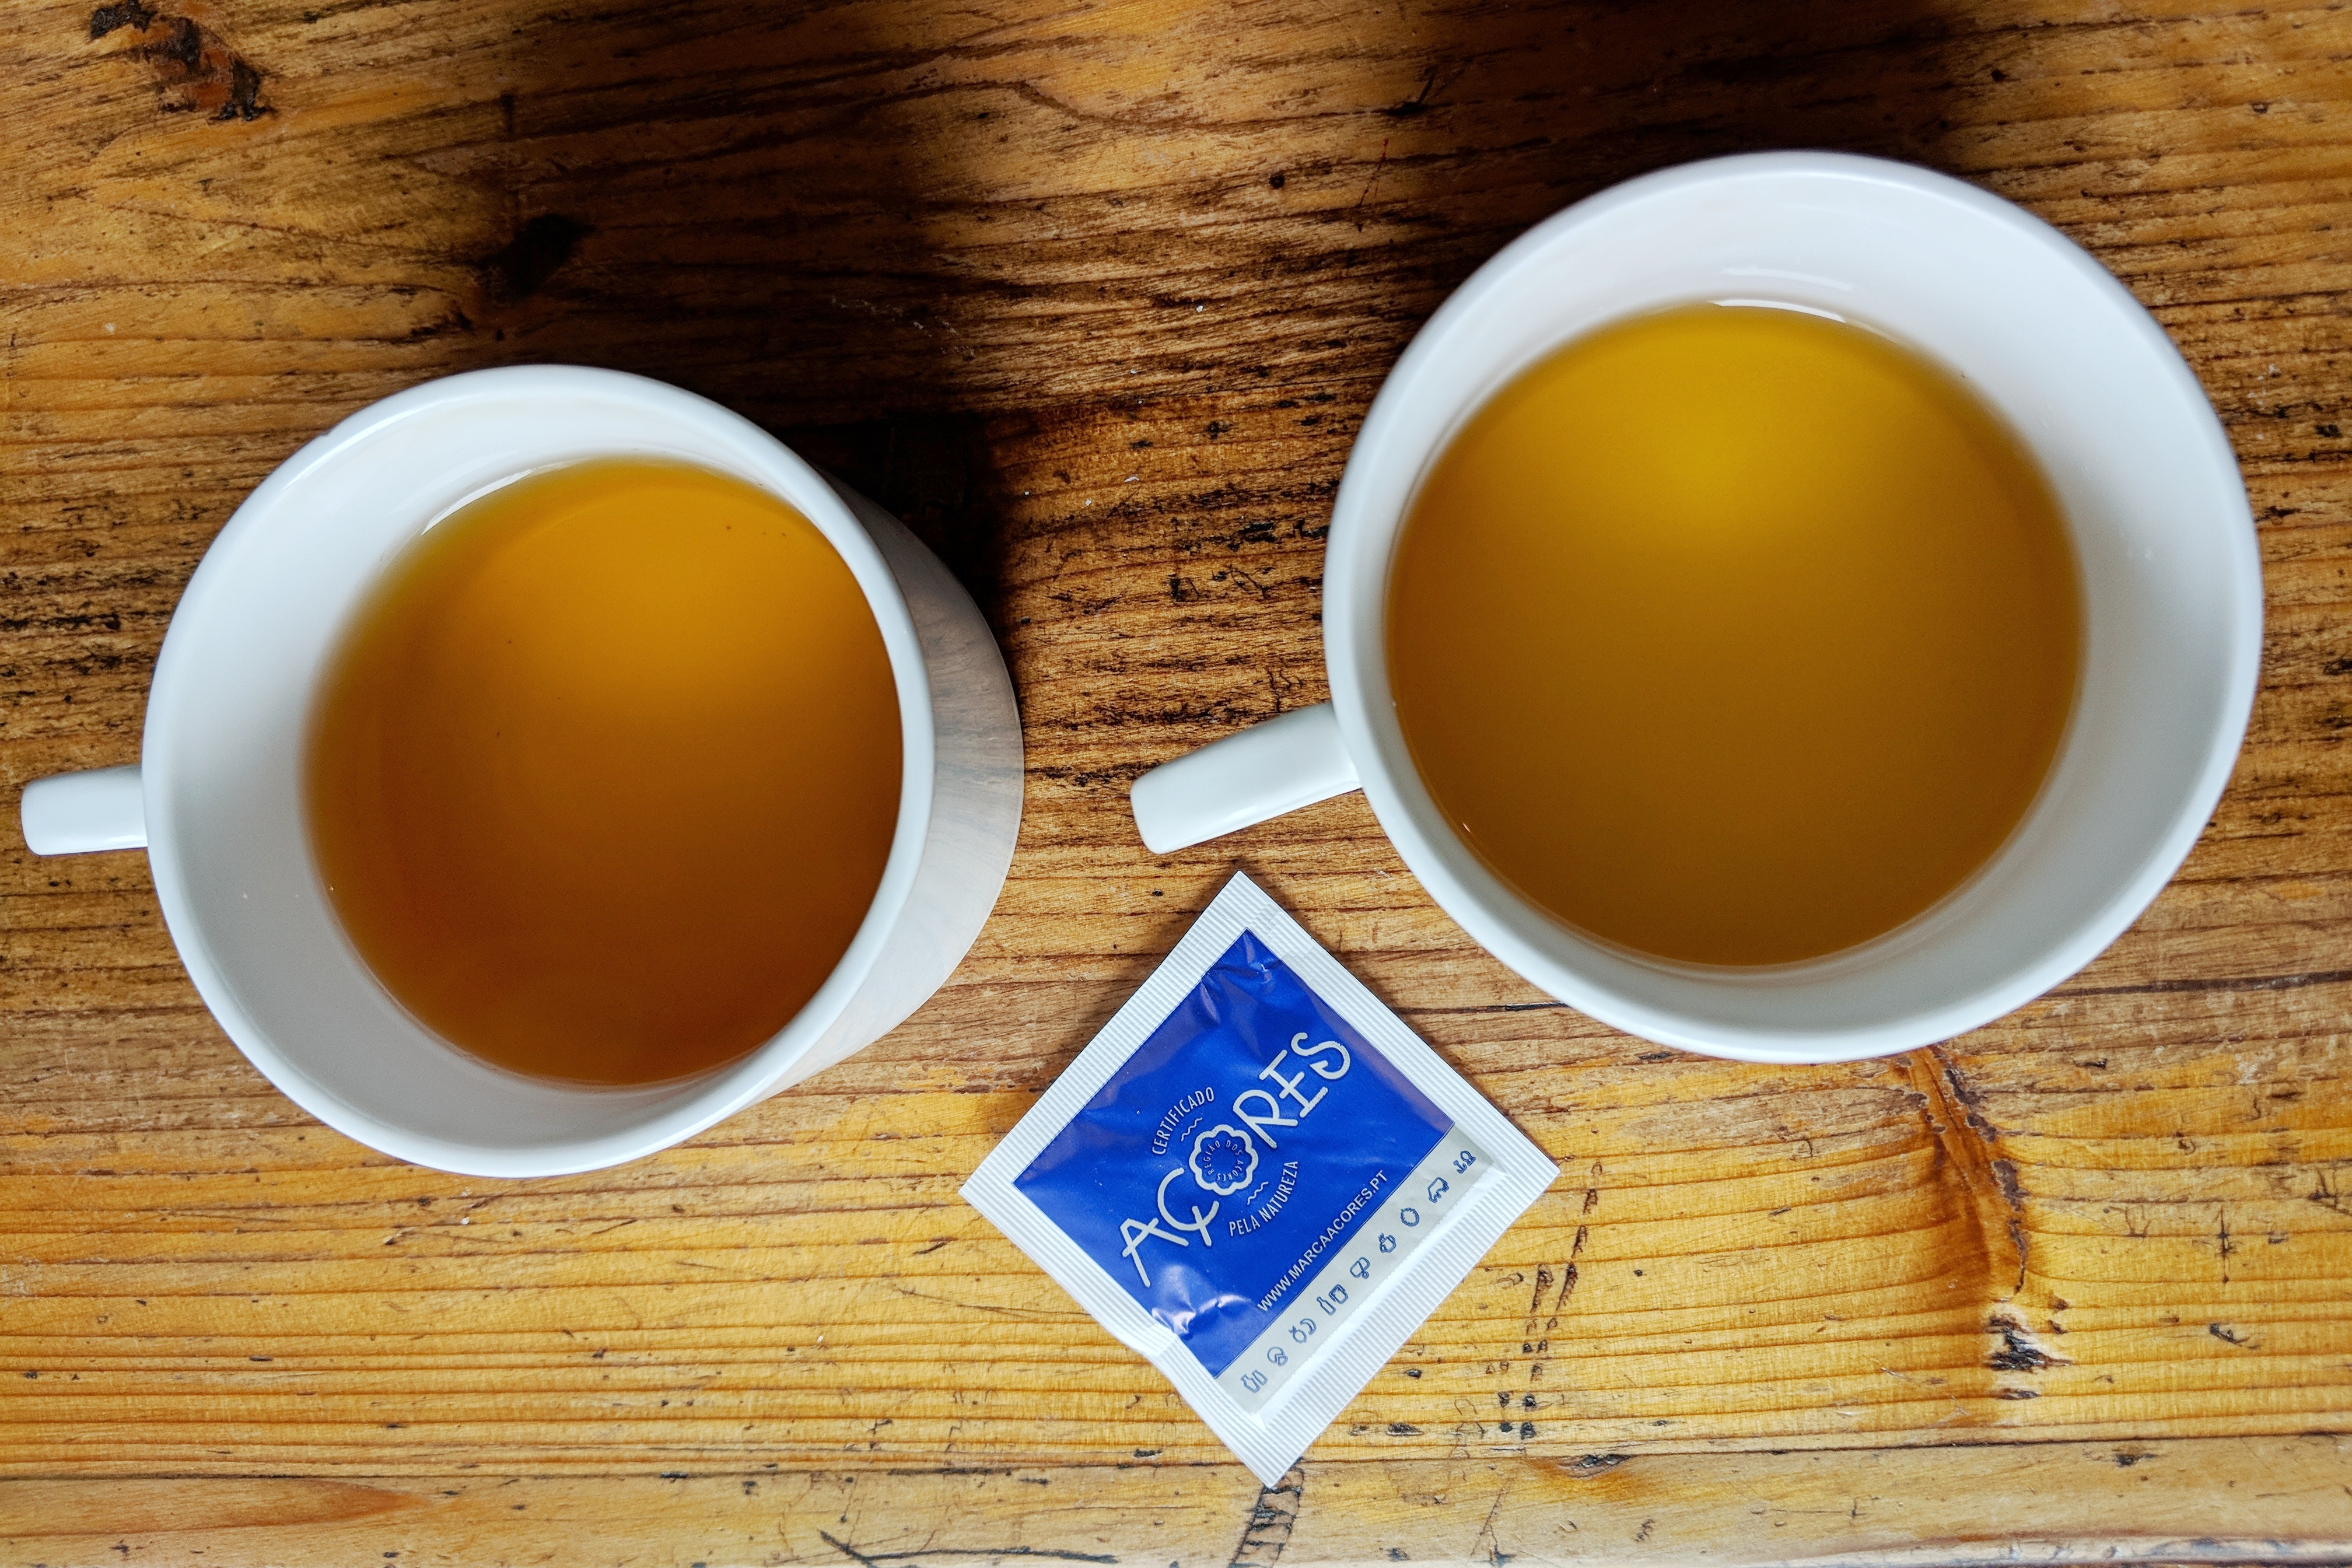 Chá Gorreana makes green tea and black tea (and you can try both when you visit).